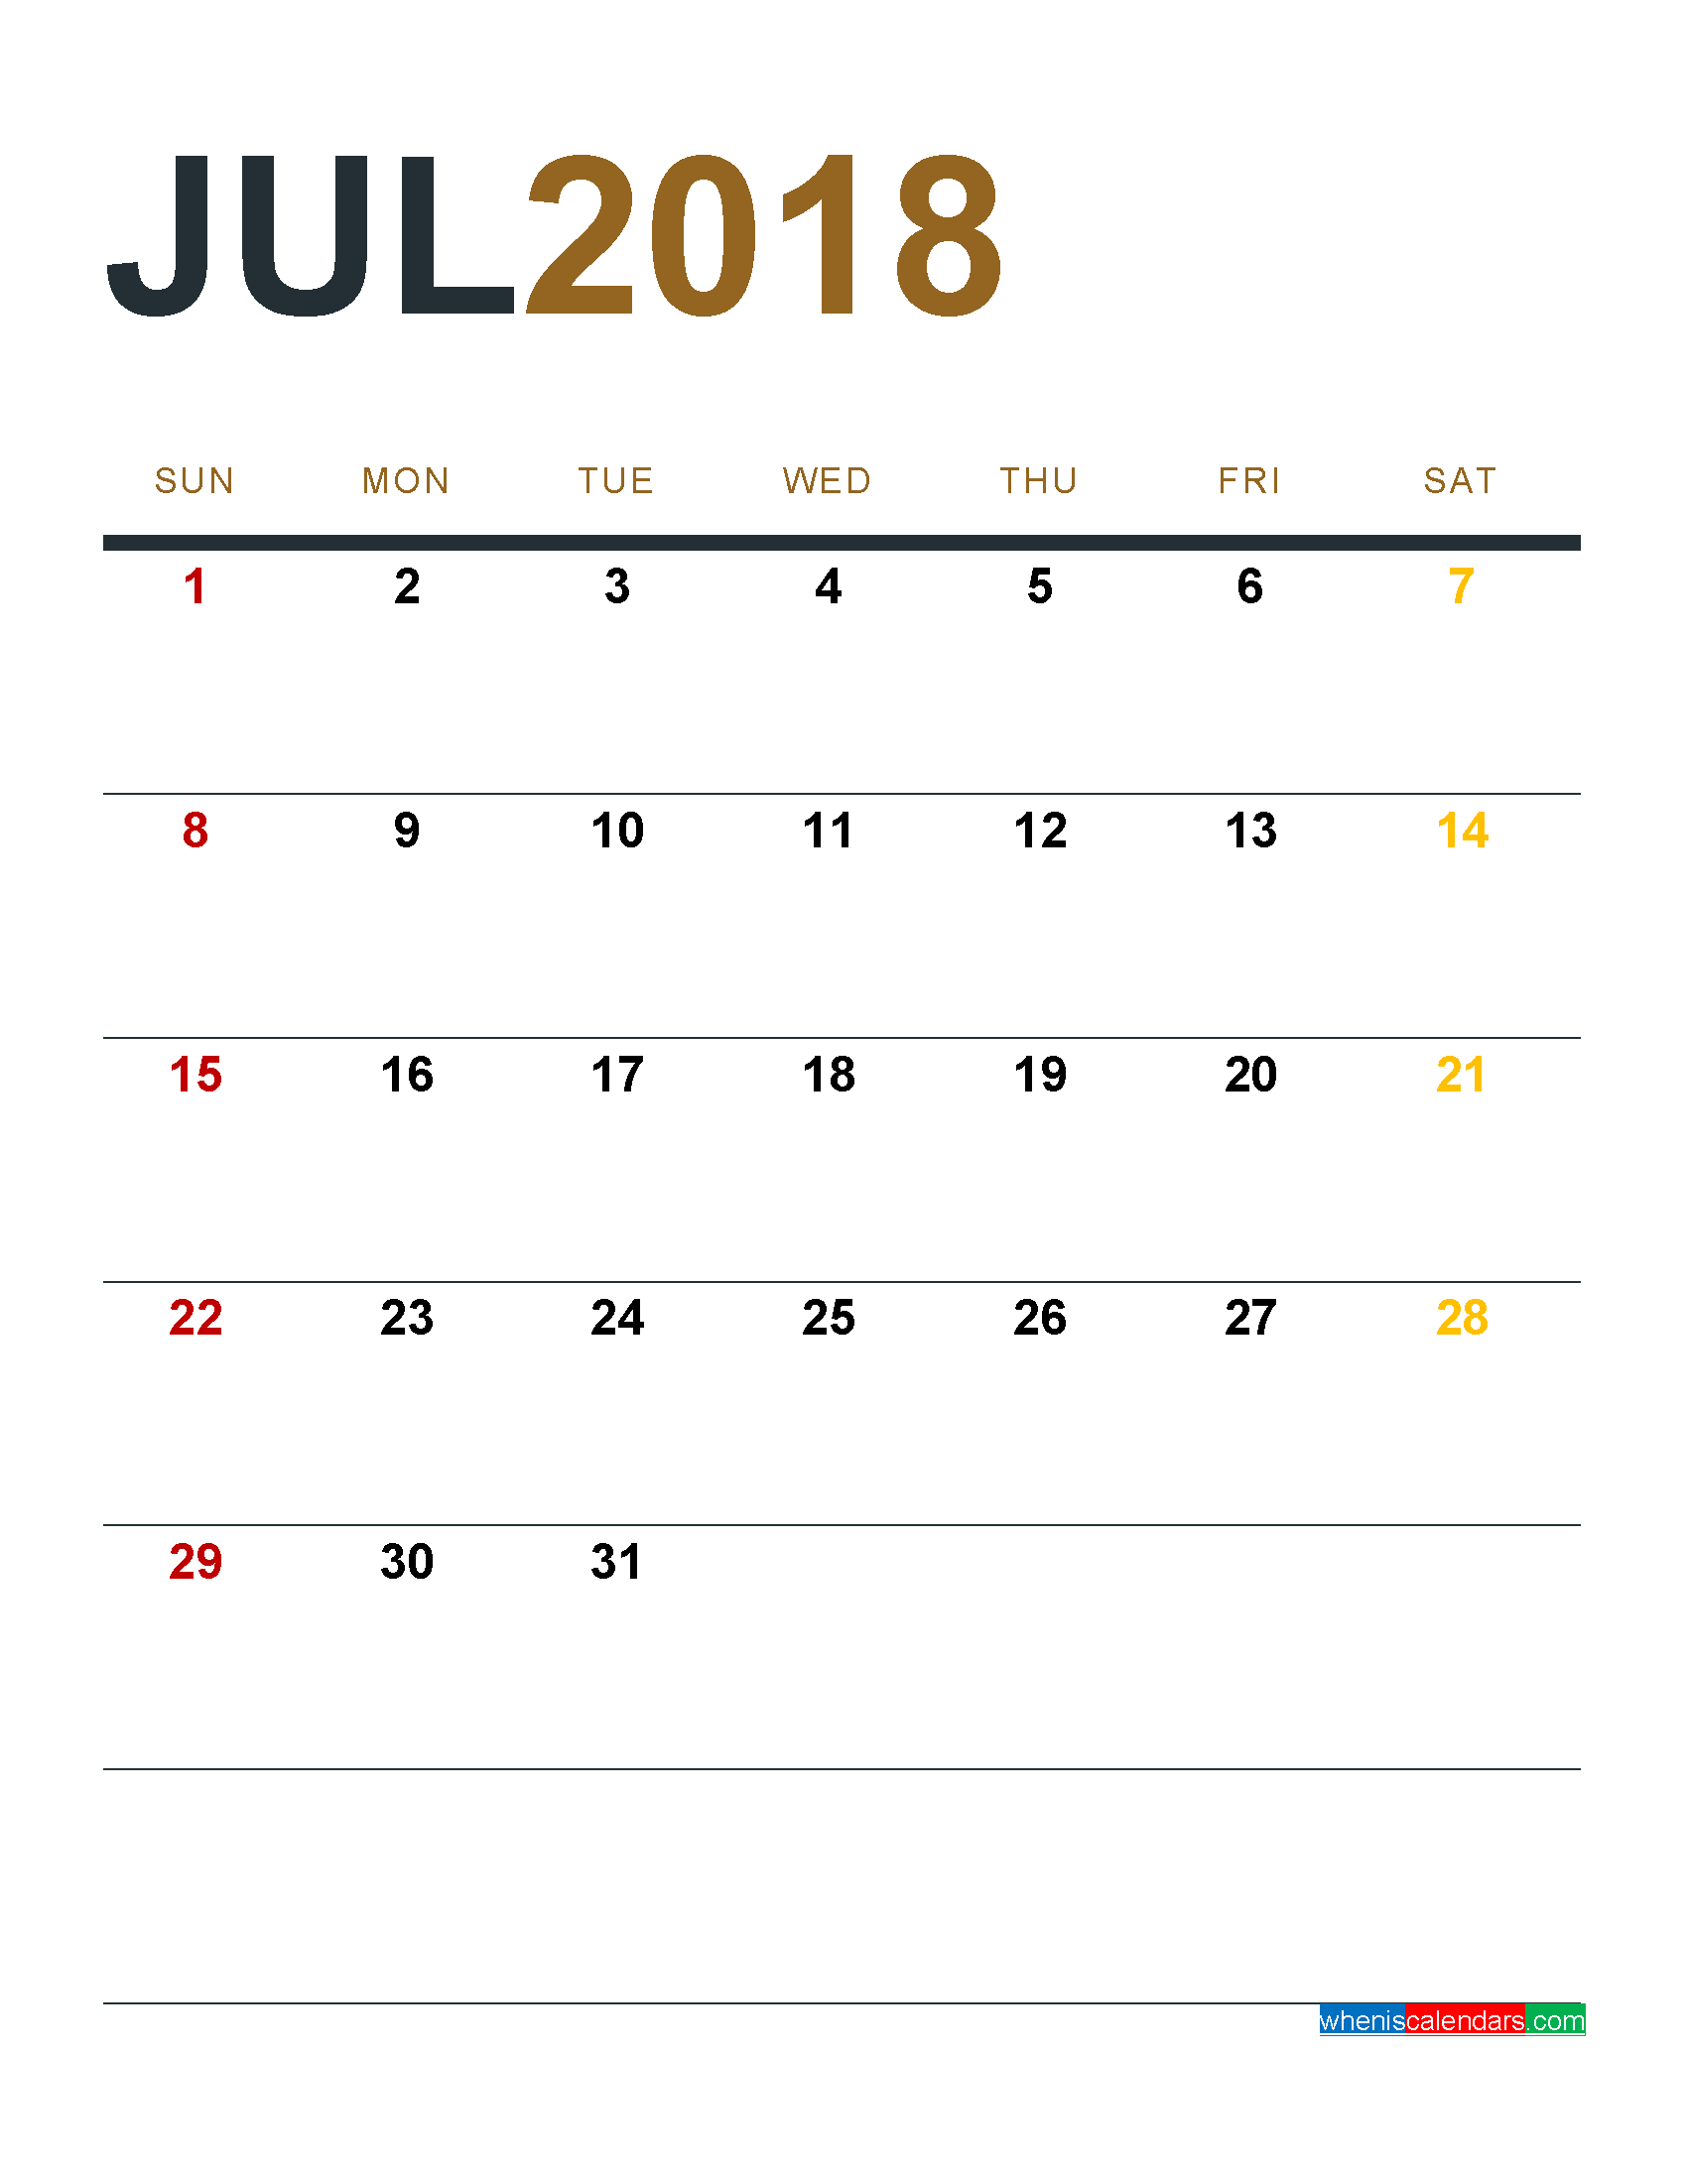 July 2018 Calendar Printable as PDF and Image 1 Month 1 Page ...